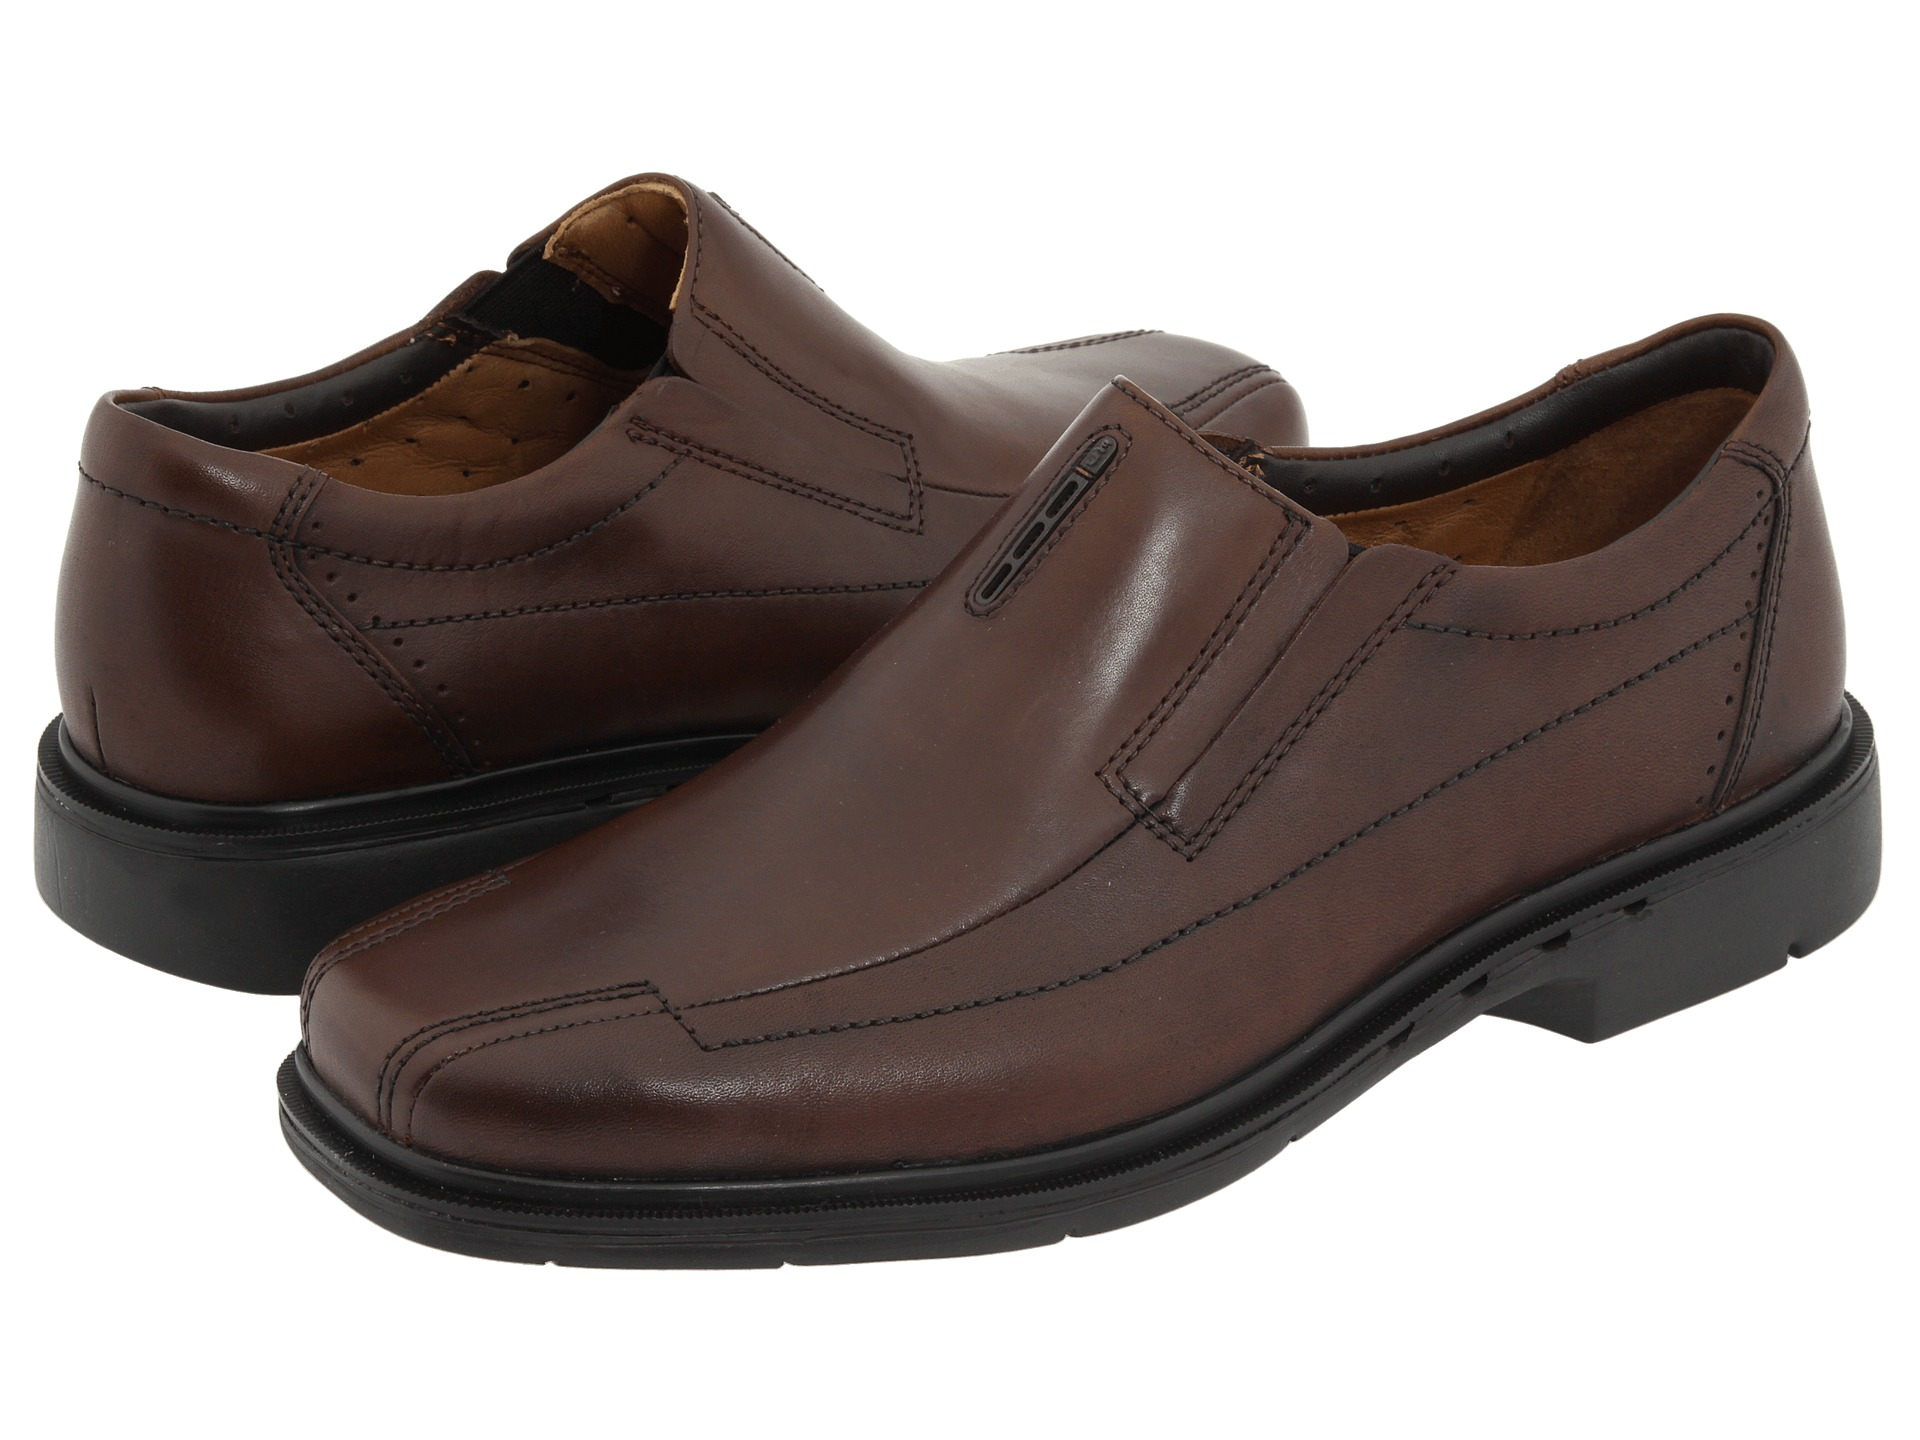 clarks competitive strategy Clarks shoes business strategy goals indicate what a business unit wants to achieve strategy describes the game plan for achieving those goals every business strategy consists of a marketing strategy plus a compatible technology strategy and sourcing strategy.